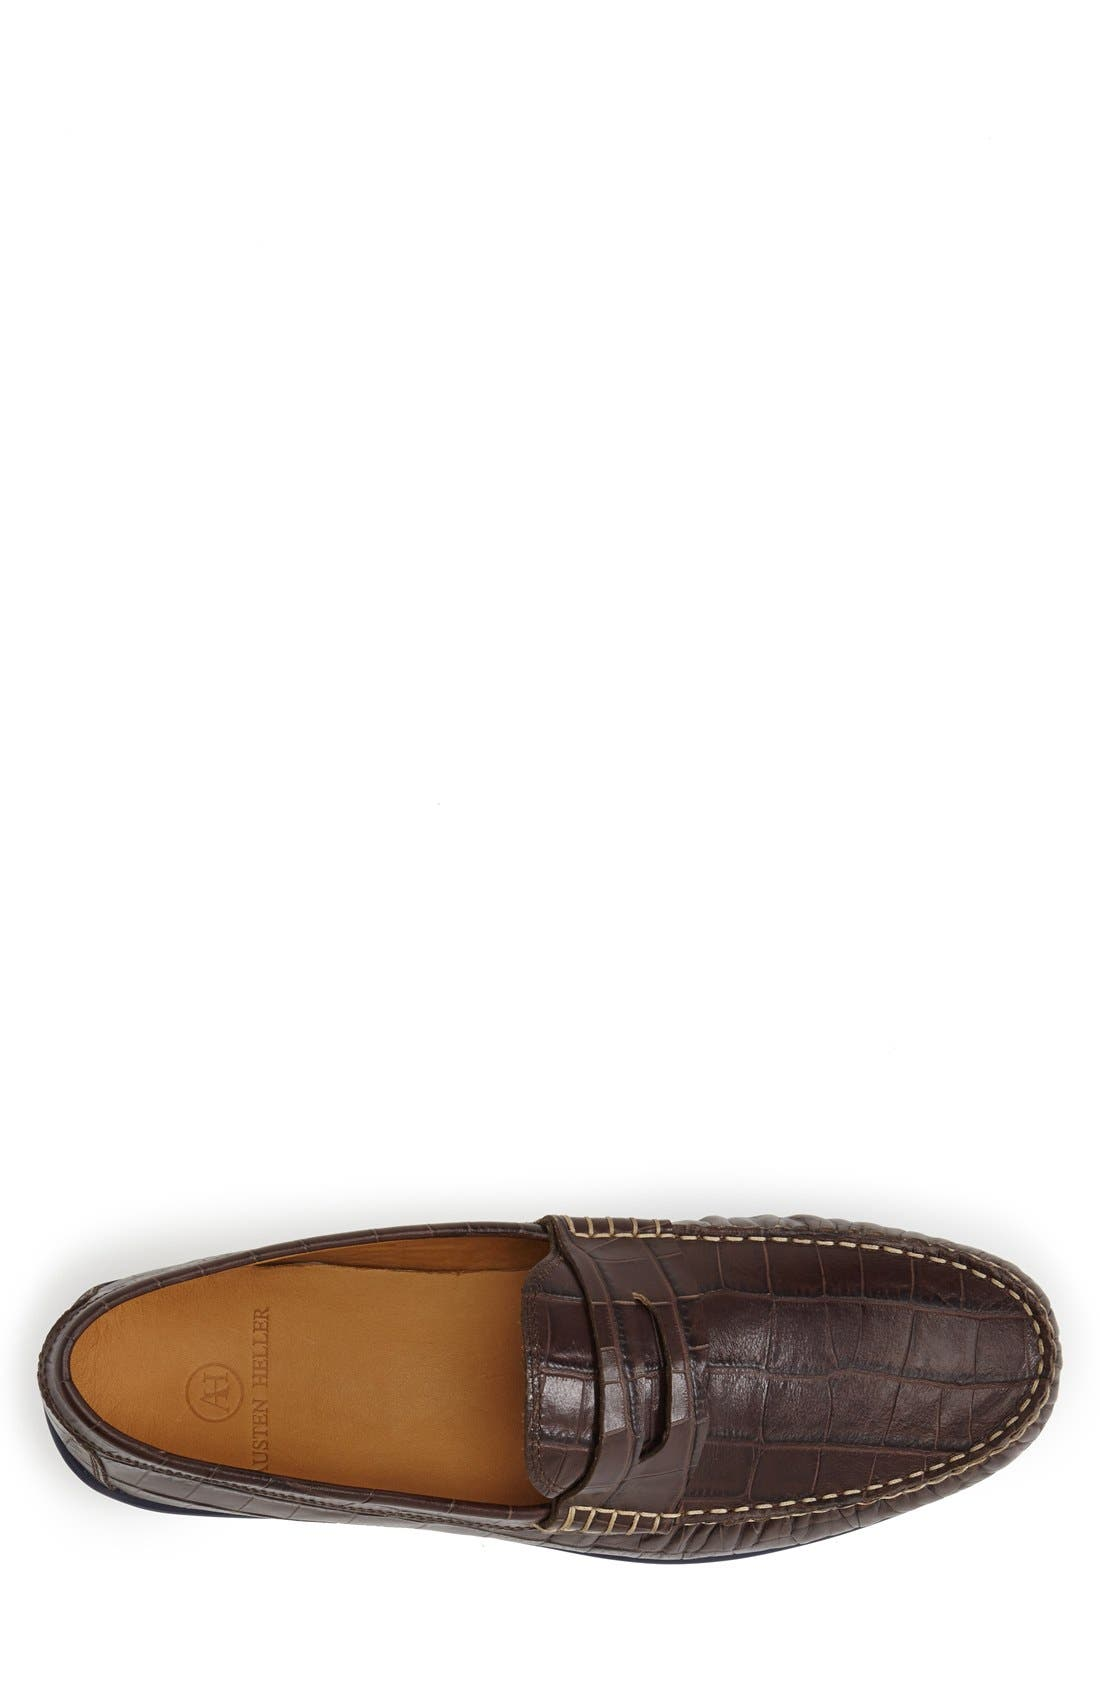 'Waverly' Leather Penny Loafer,                             Alternate thumbnail 3, color,                             Brown